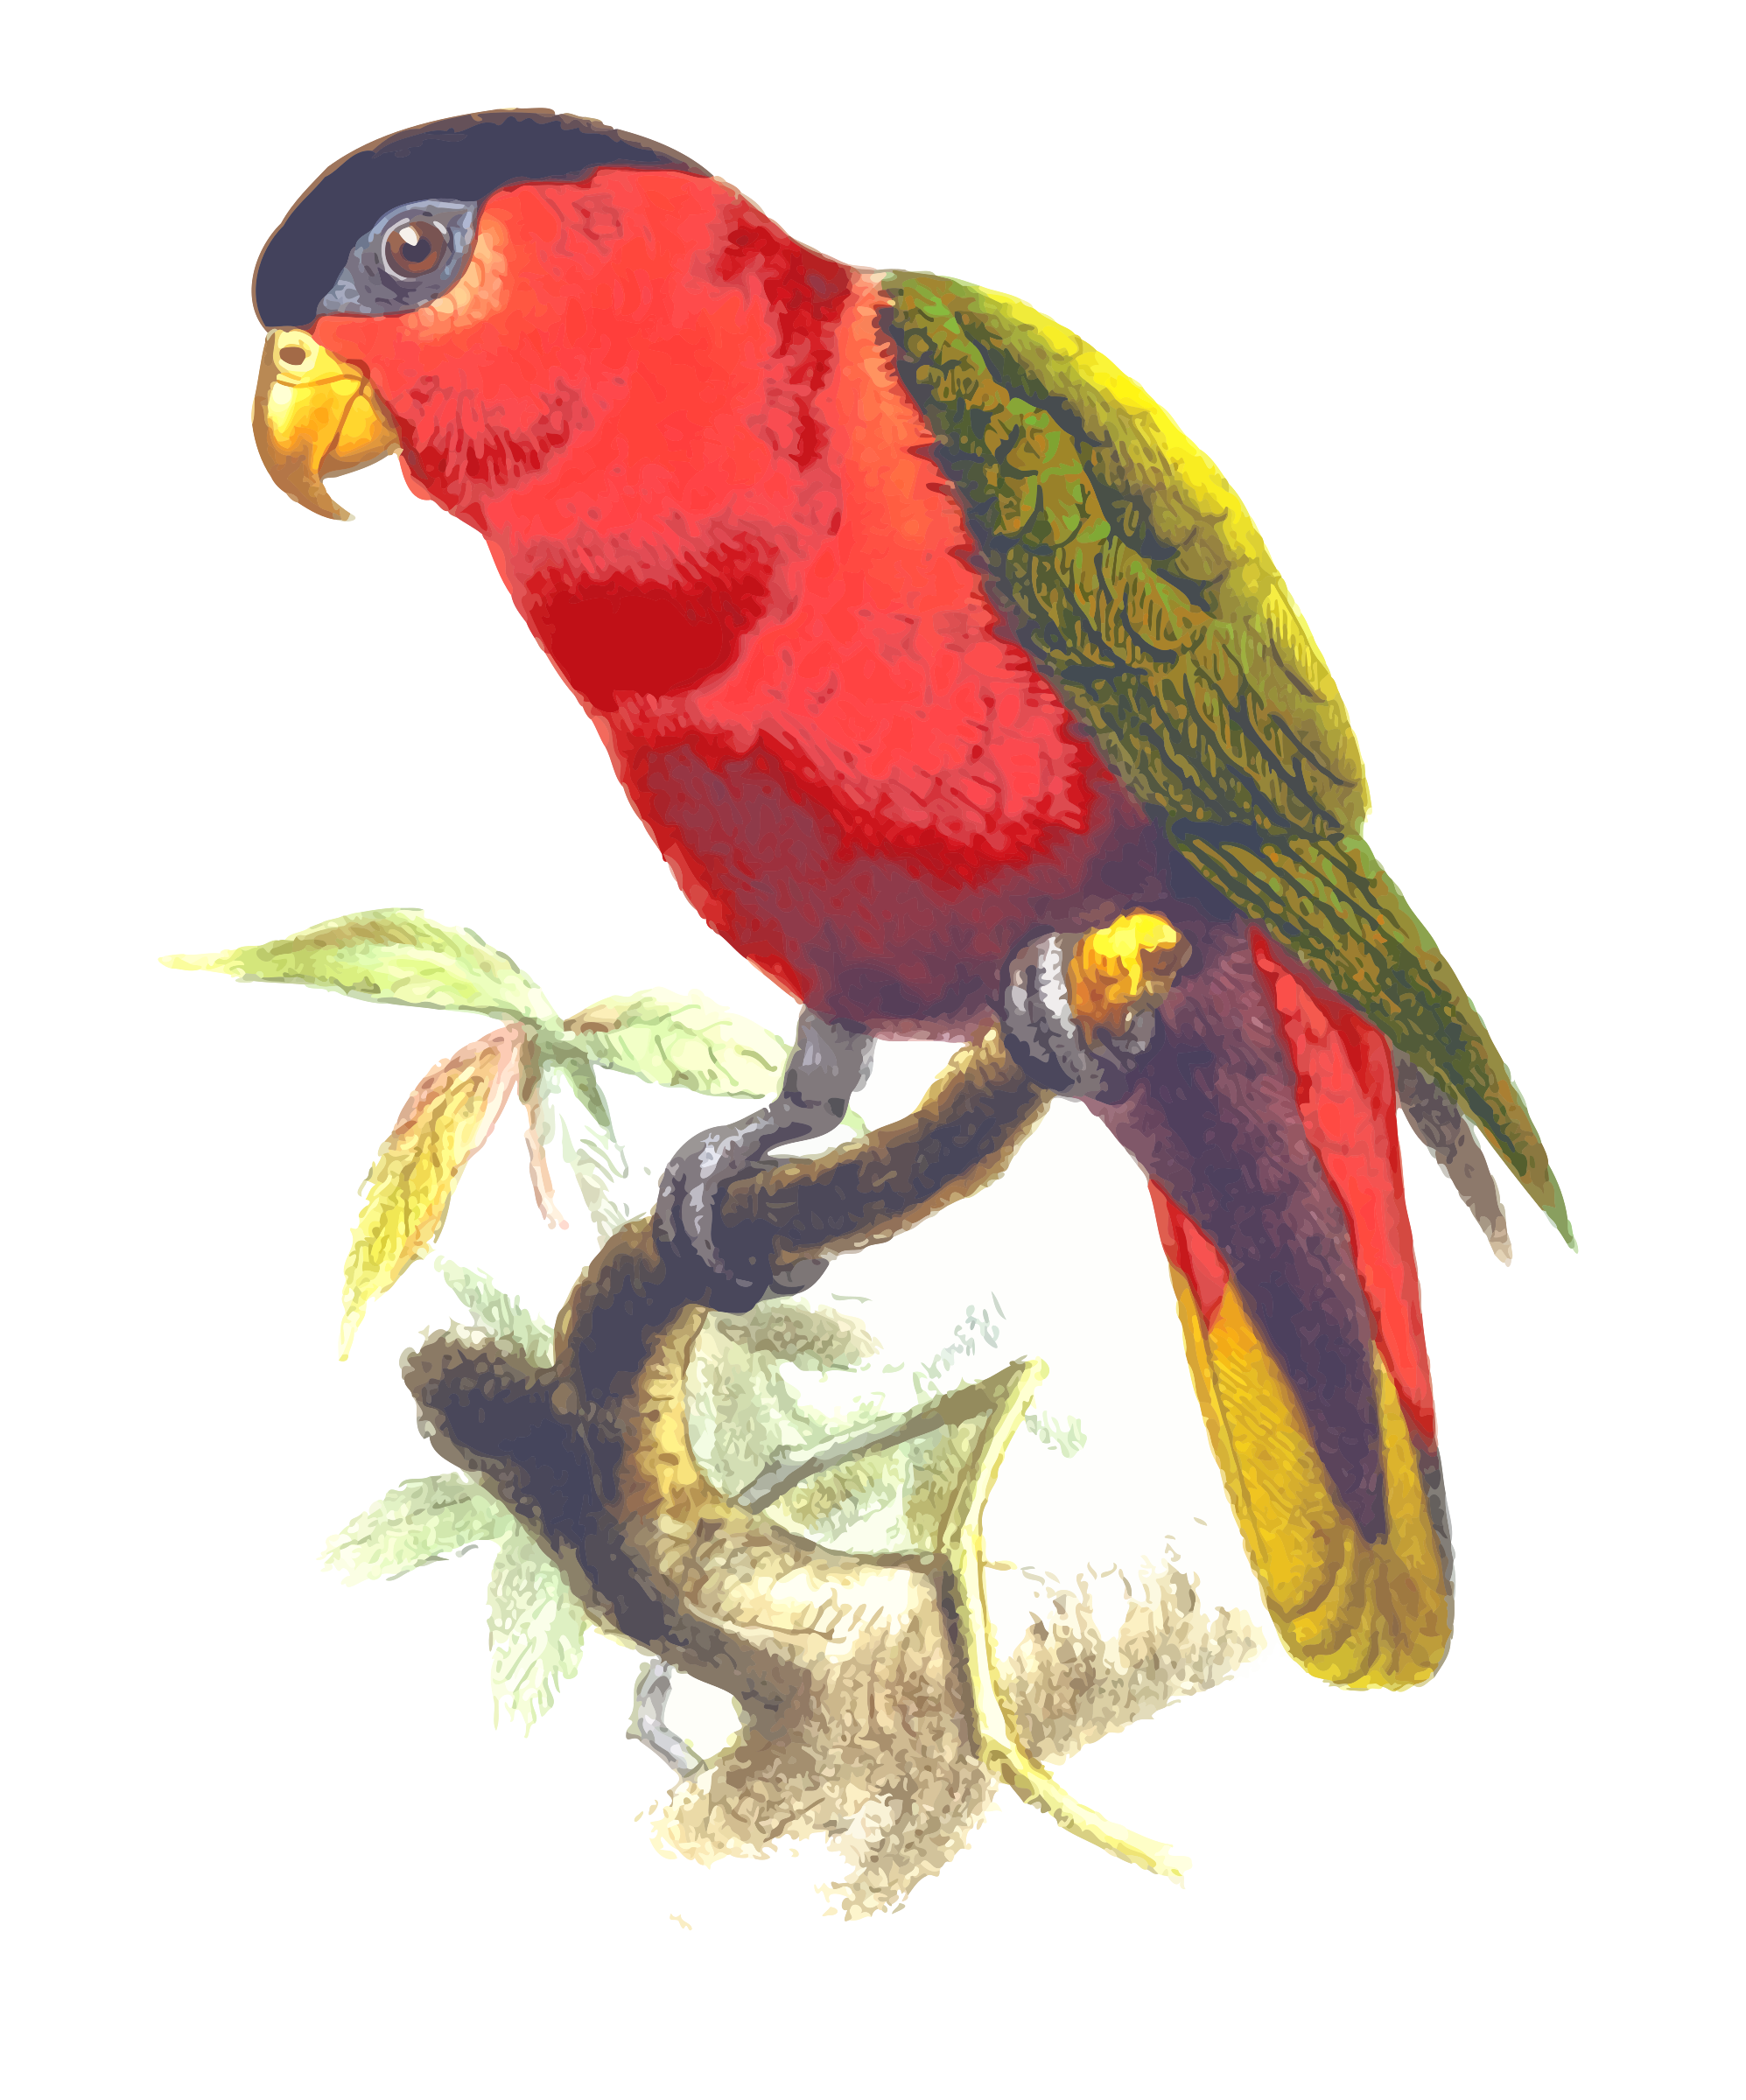 Purple-bellied lory by Firkin